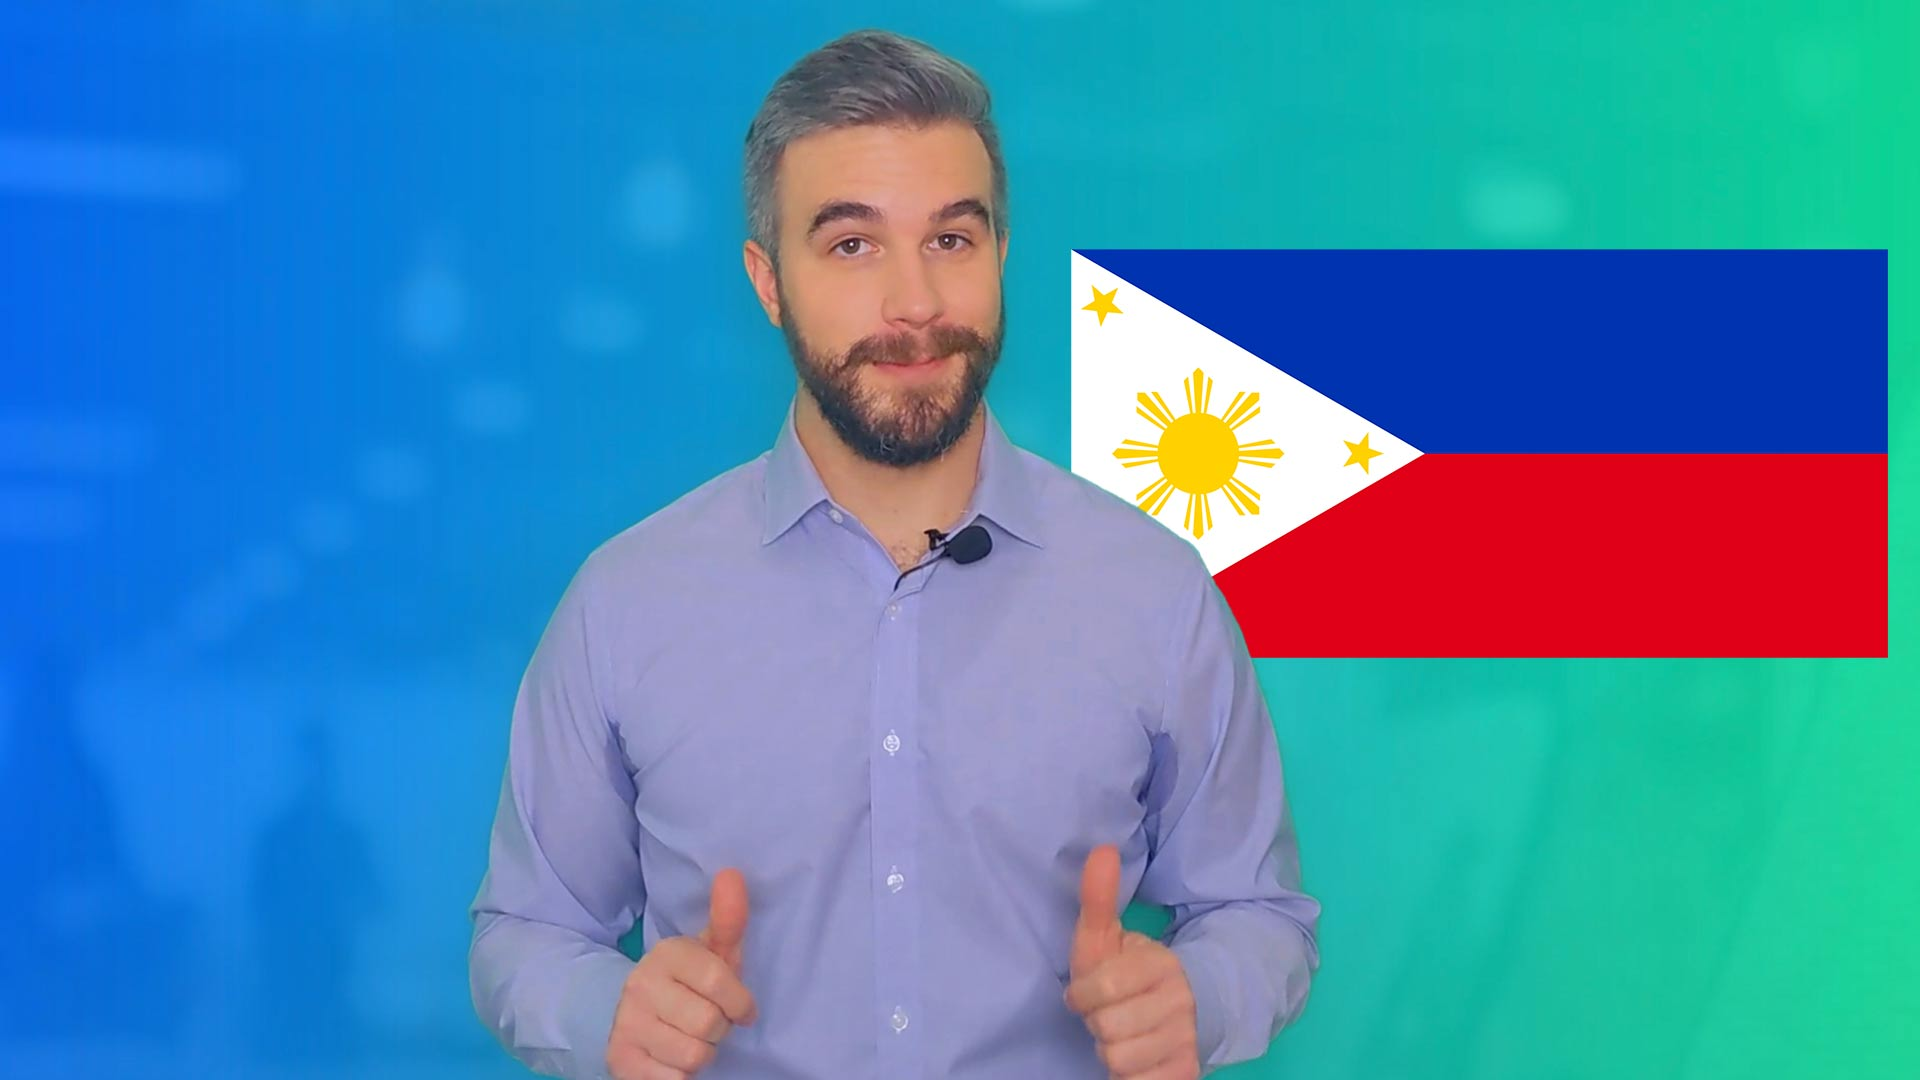 Establishing your business in the Philippines